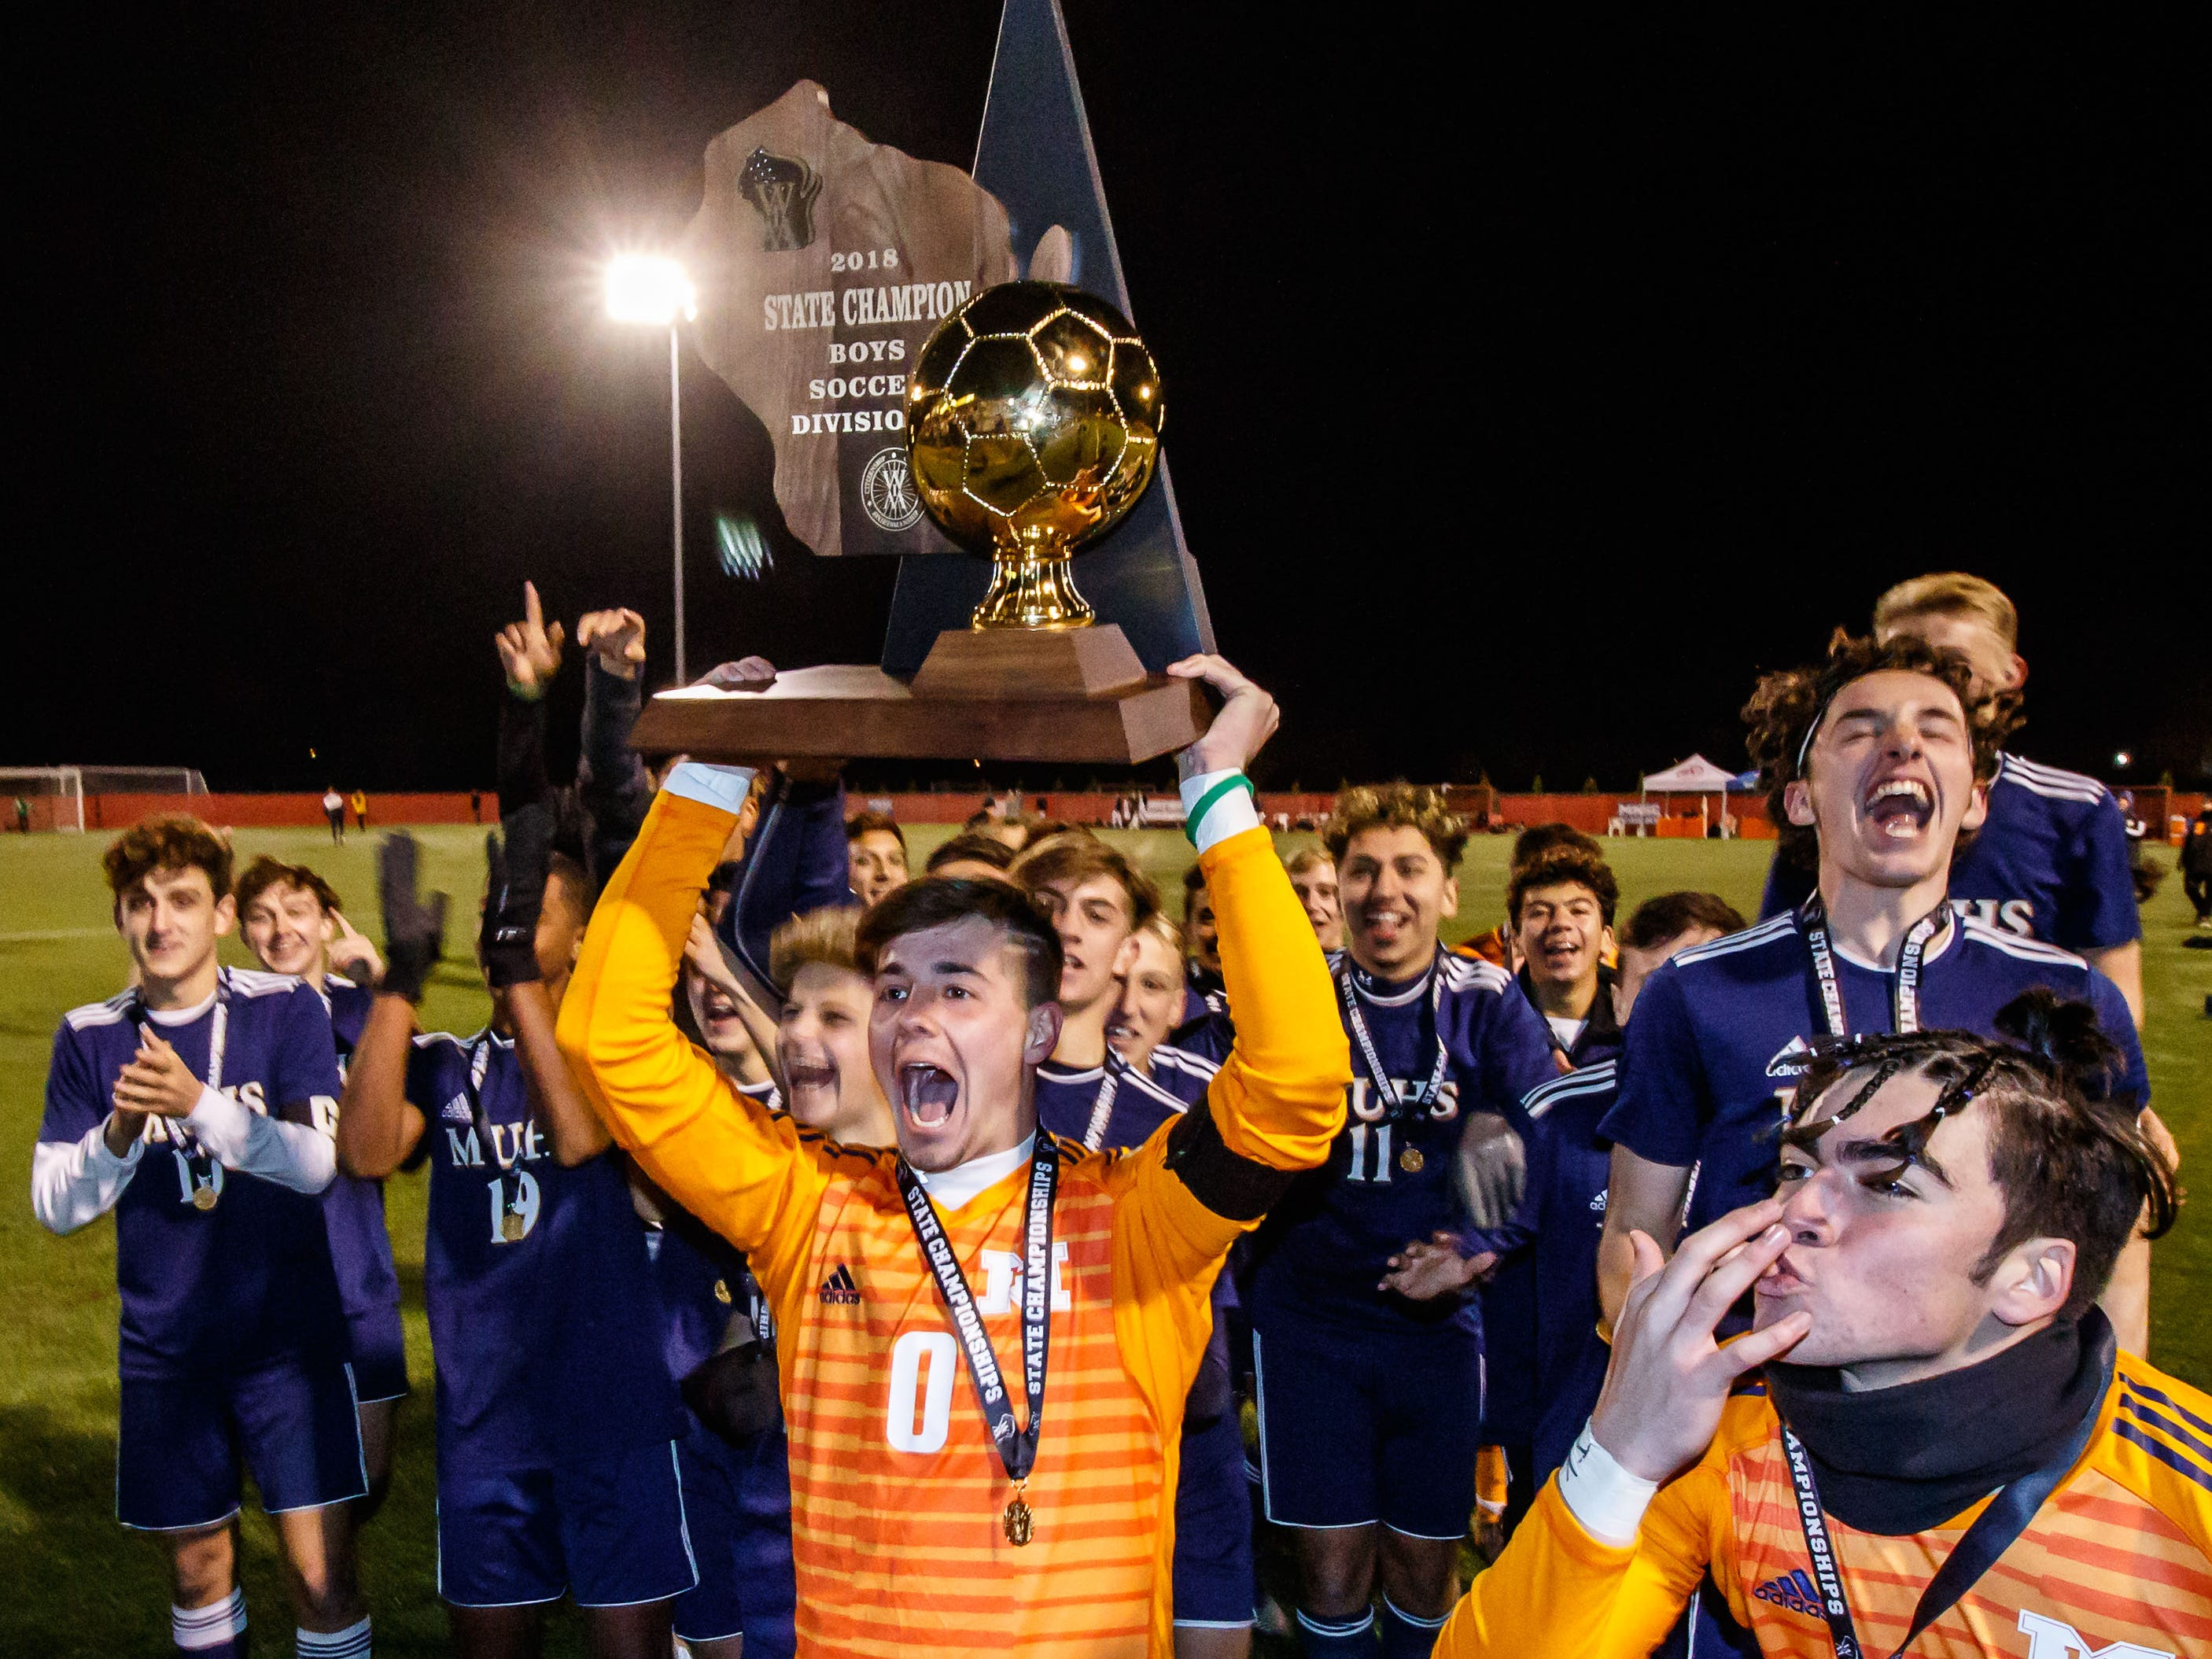 Marquette goalie Carter Abbott (0) hoists the gold ball for the fans after winning the the WIAA Division 1 state soccer title match 3-0 over Hamilton at Uihlein Soccer Park in Milwaukee on Saturday, Nov. 3, 2018.